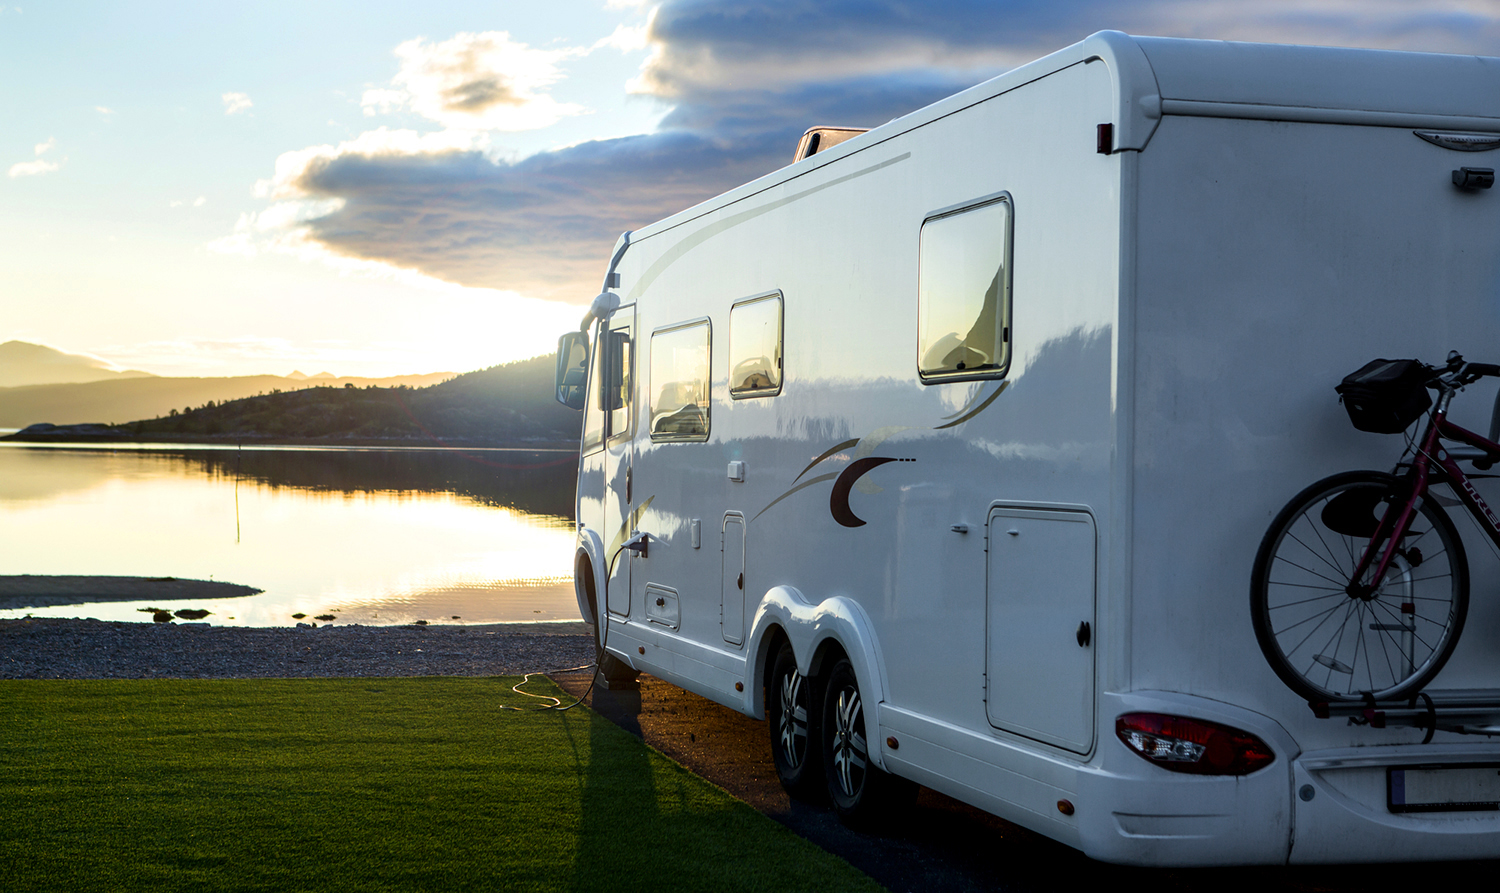 Large camper van motorhome parked near a lake after a thorough RV Inspection in Tennessee